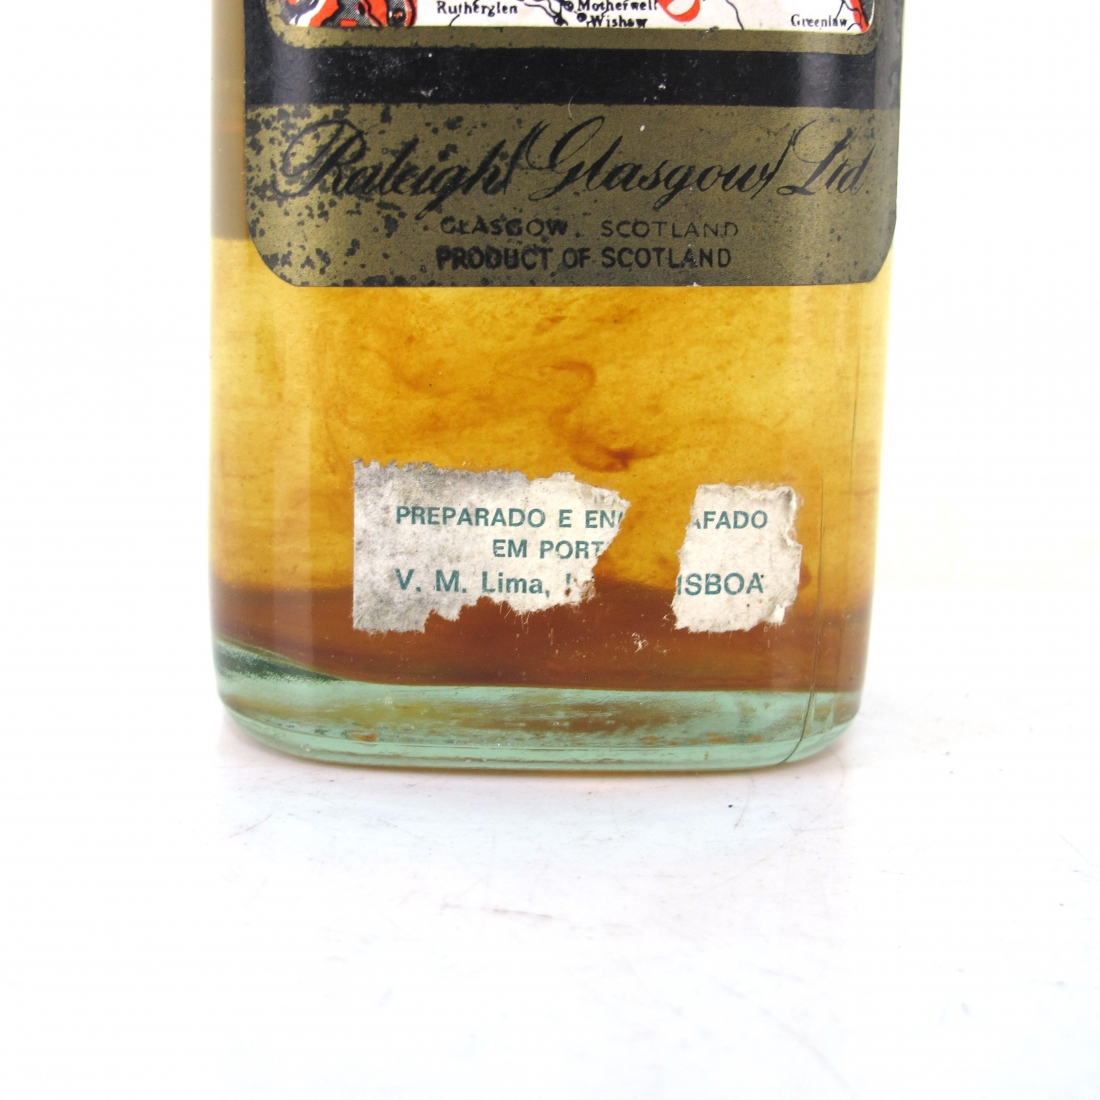 Sir Walter Raleigh Blended Scotch Whisky 1970s